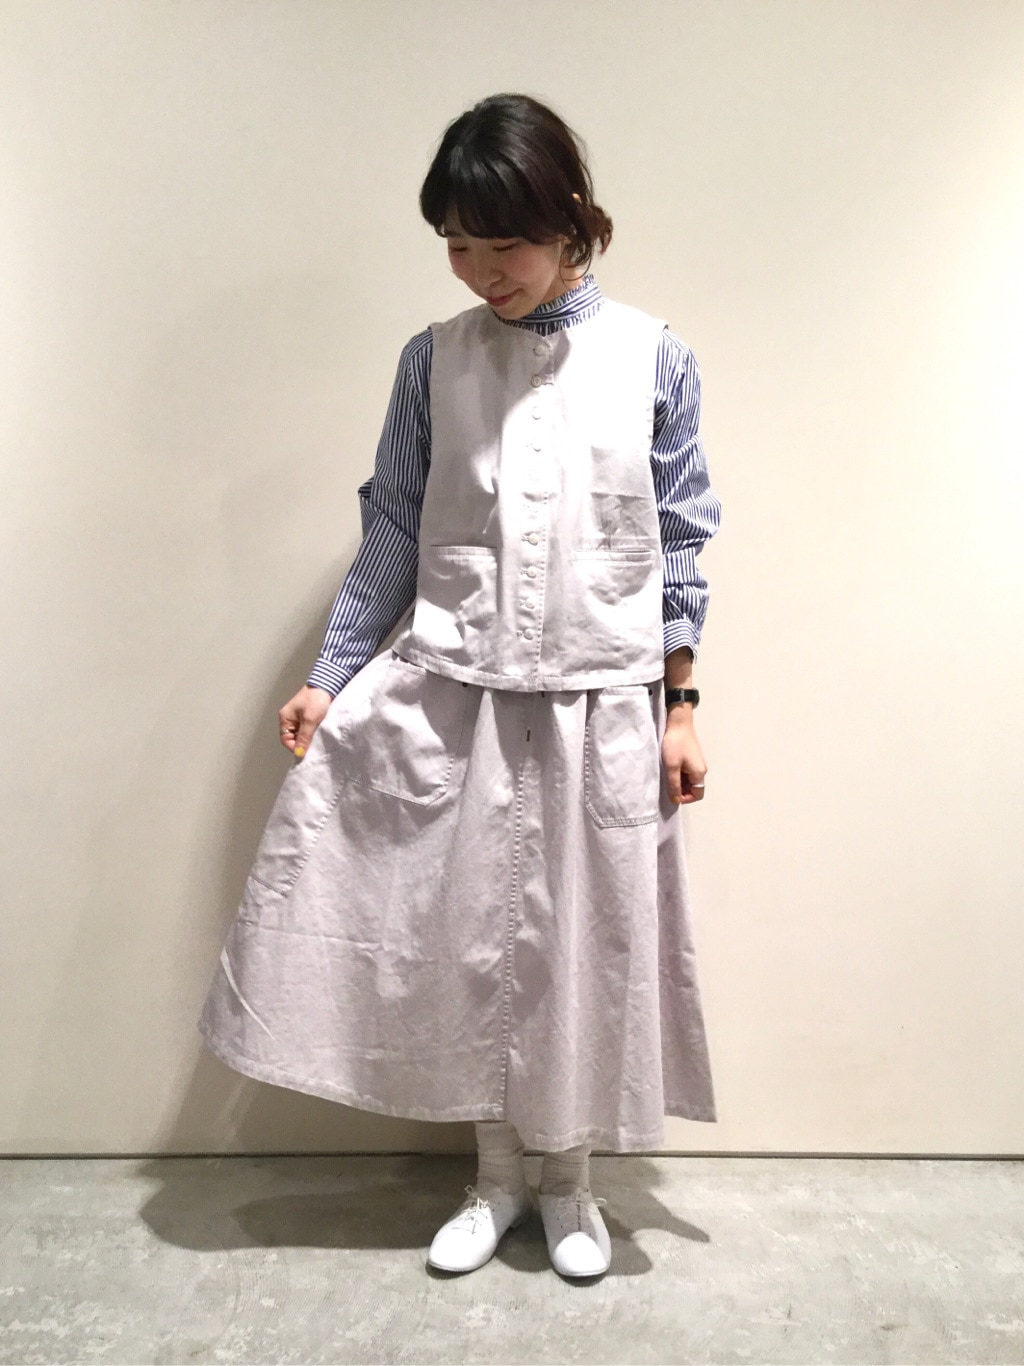 AMB SHOP PAR ICI CHILD WOMAN,PAR ICI ルミネ横浜 身長:154cm 2020.03.16